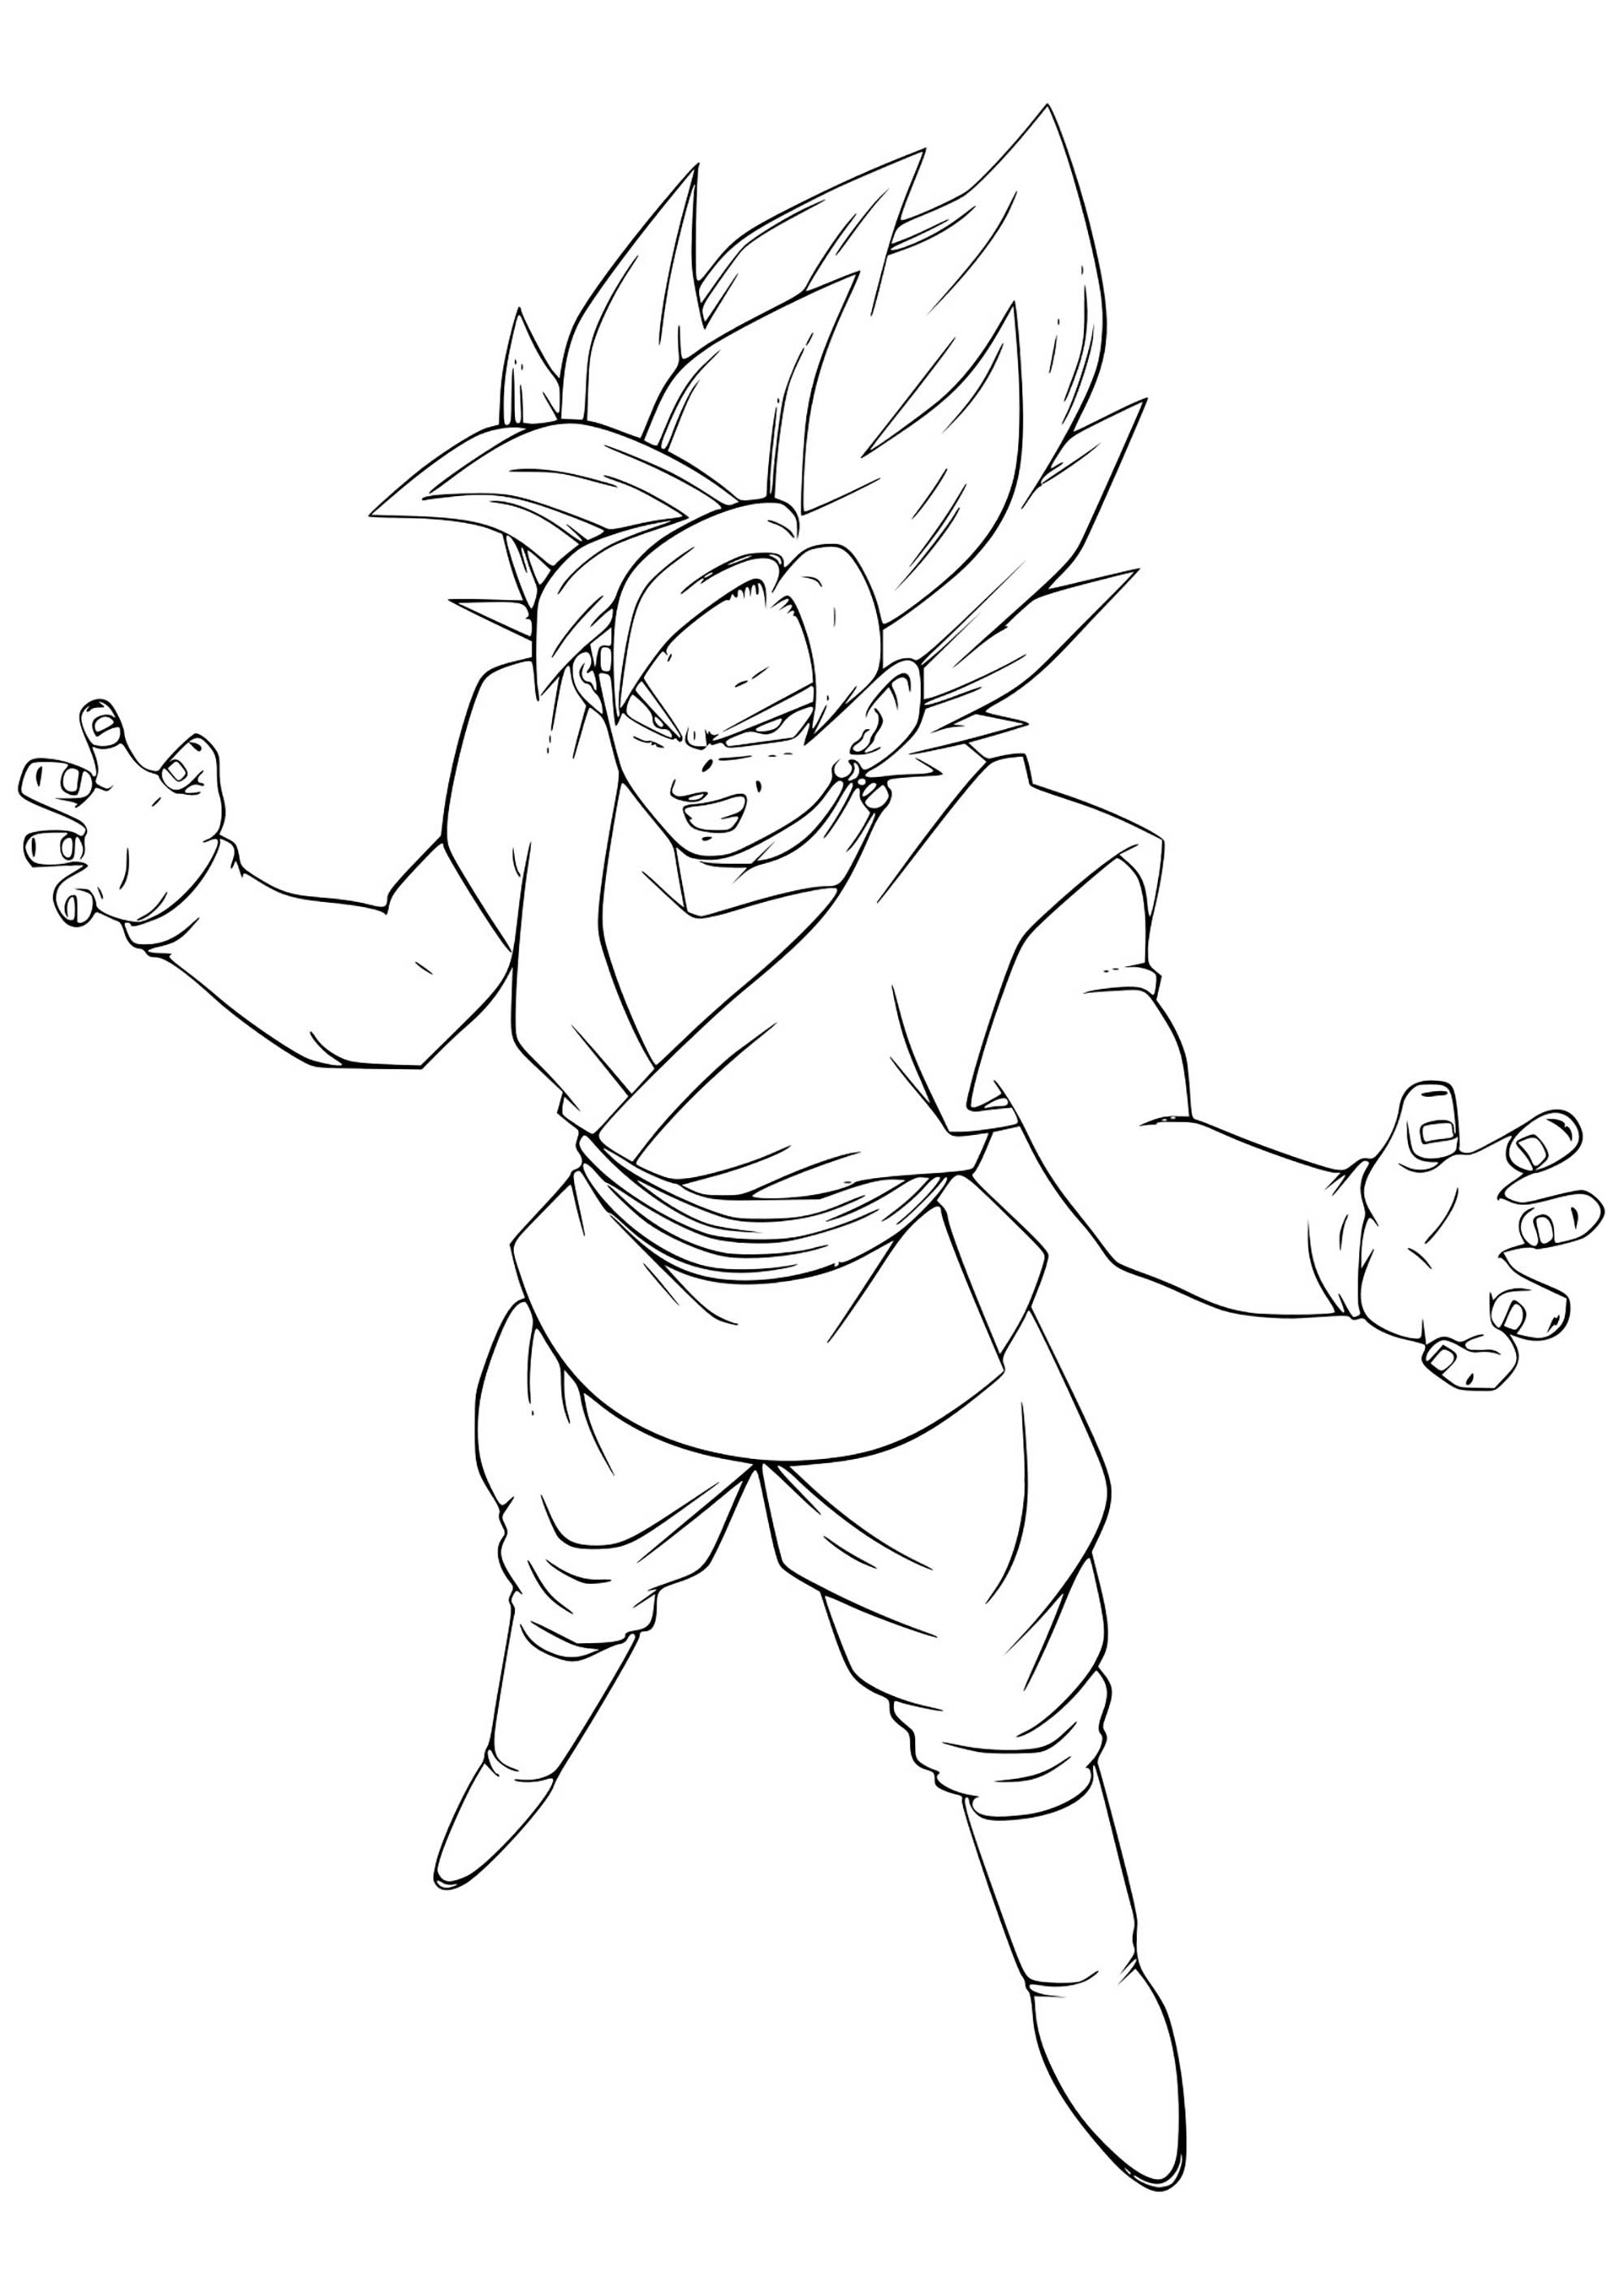 goku pictures to print goku coloring pages to printable goku coloring pages pictures goku to print